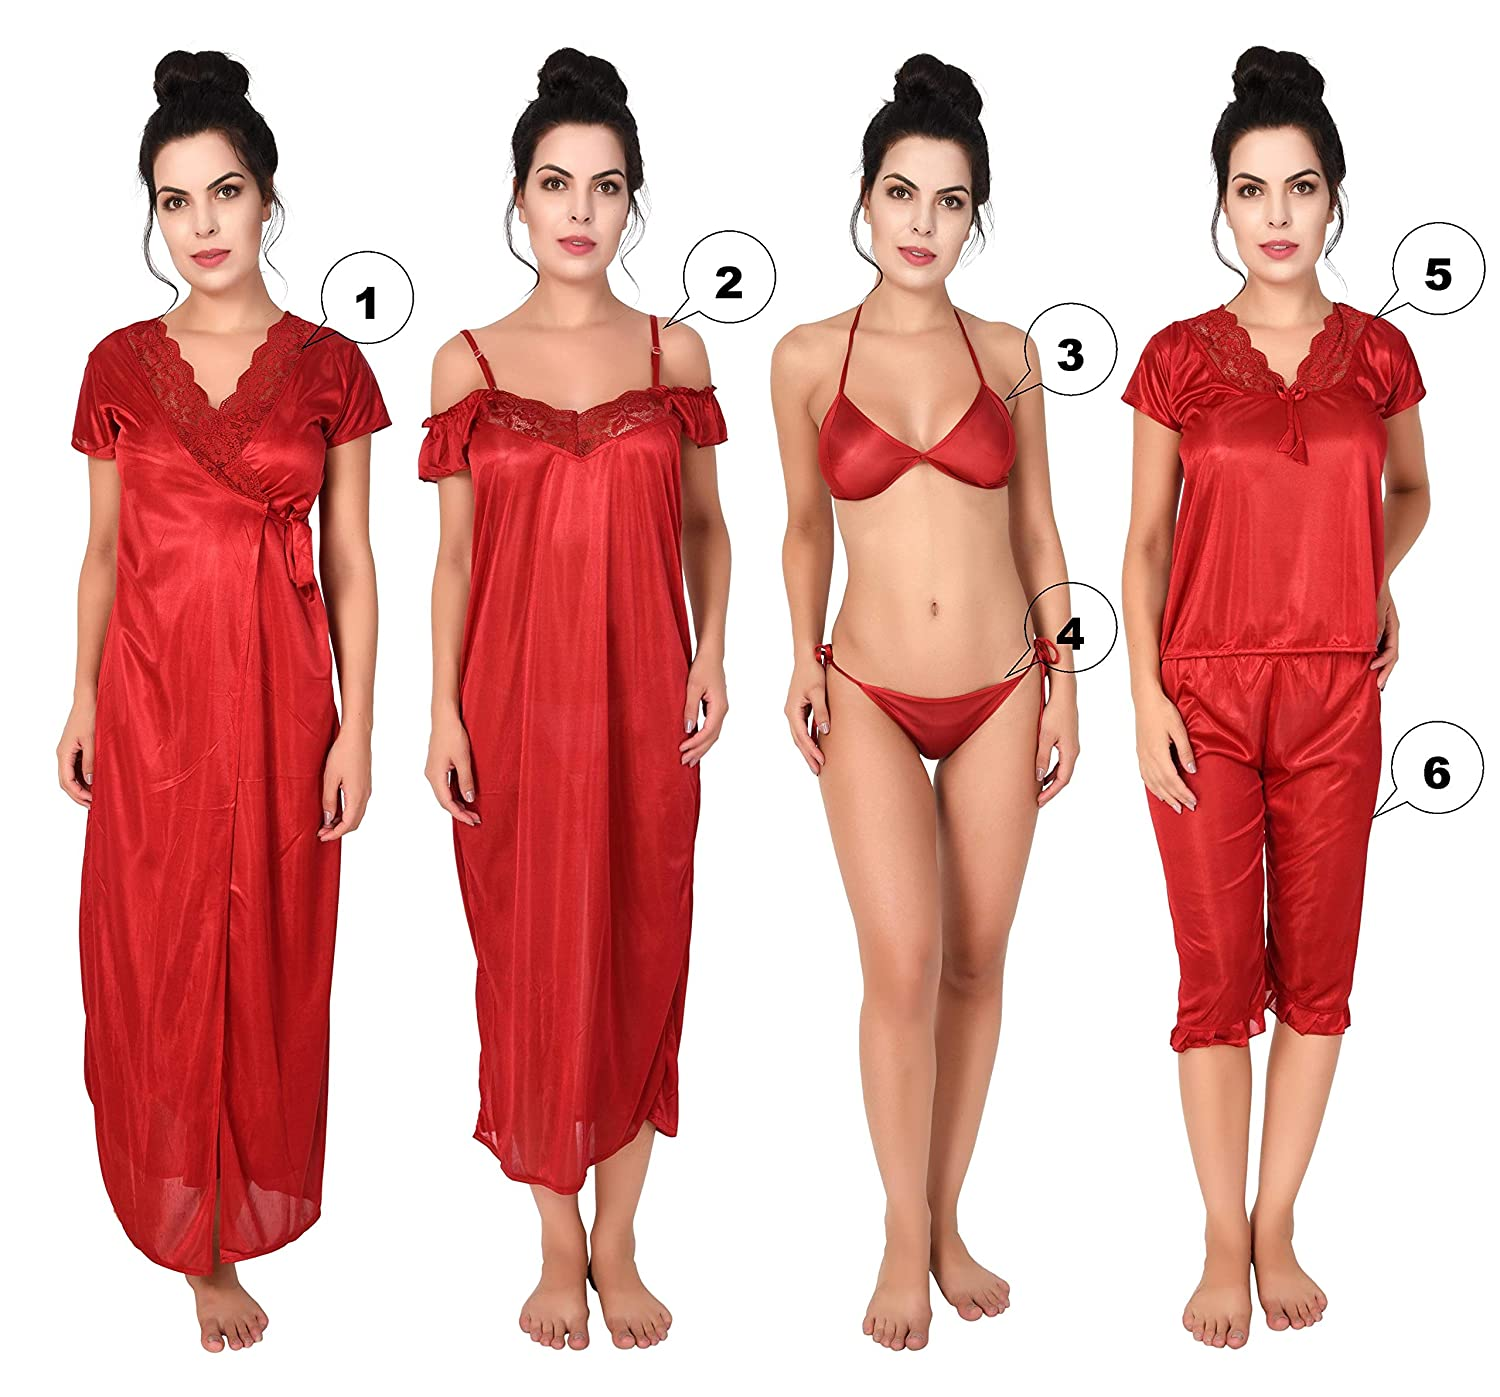 8554e2614 Freely Women s Honeymoon Satin Nighty Set - Pack of 6  Amazon.in  Clothing    Accessories